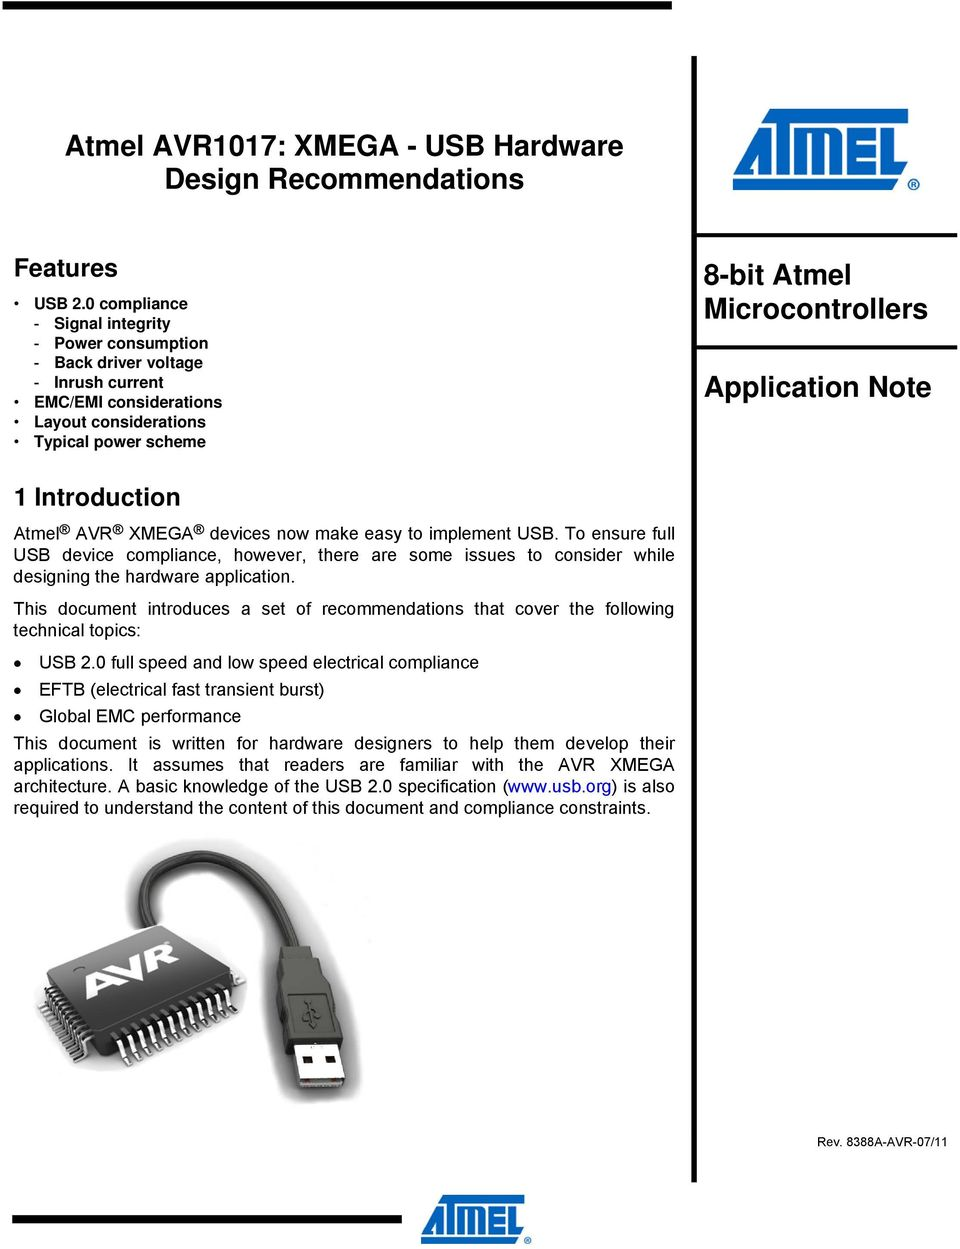 Note 1 Introduction Atmel AVR XMEGA devices now make easy to implement USB. To ensure full USB device compliance, however, there are some issues to consider while designing the hardware application.